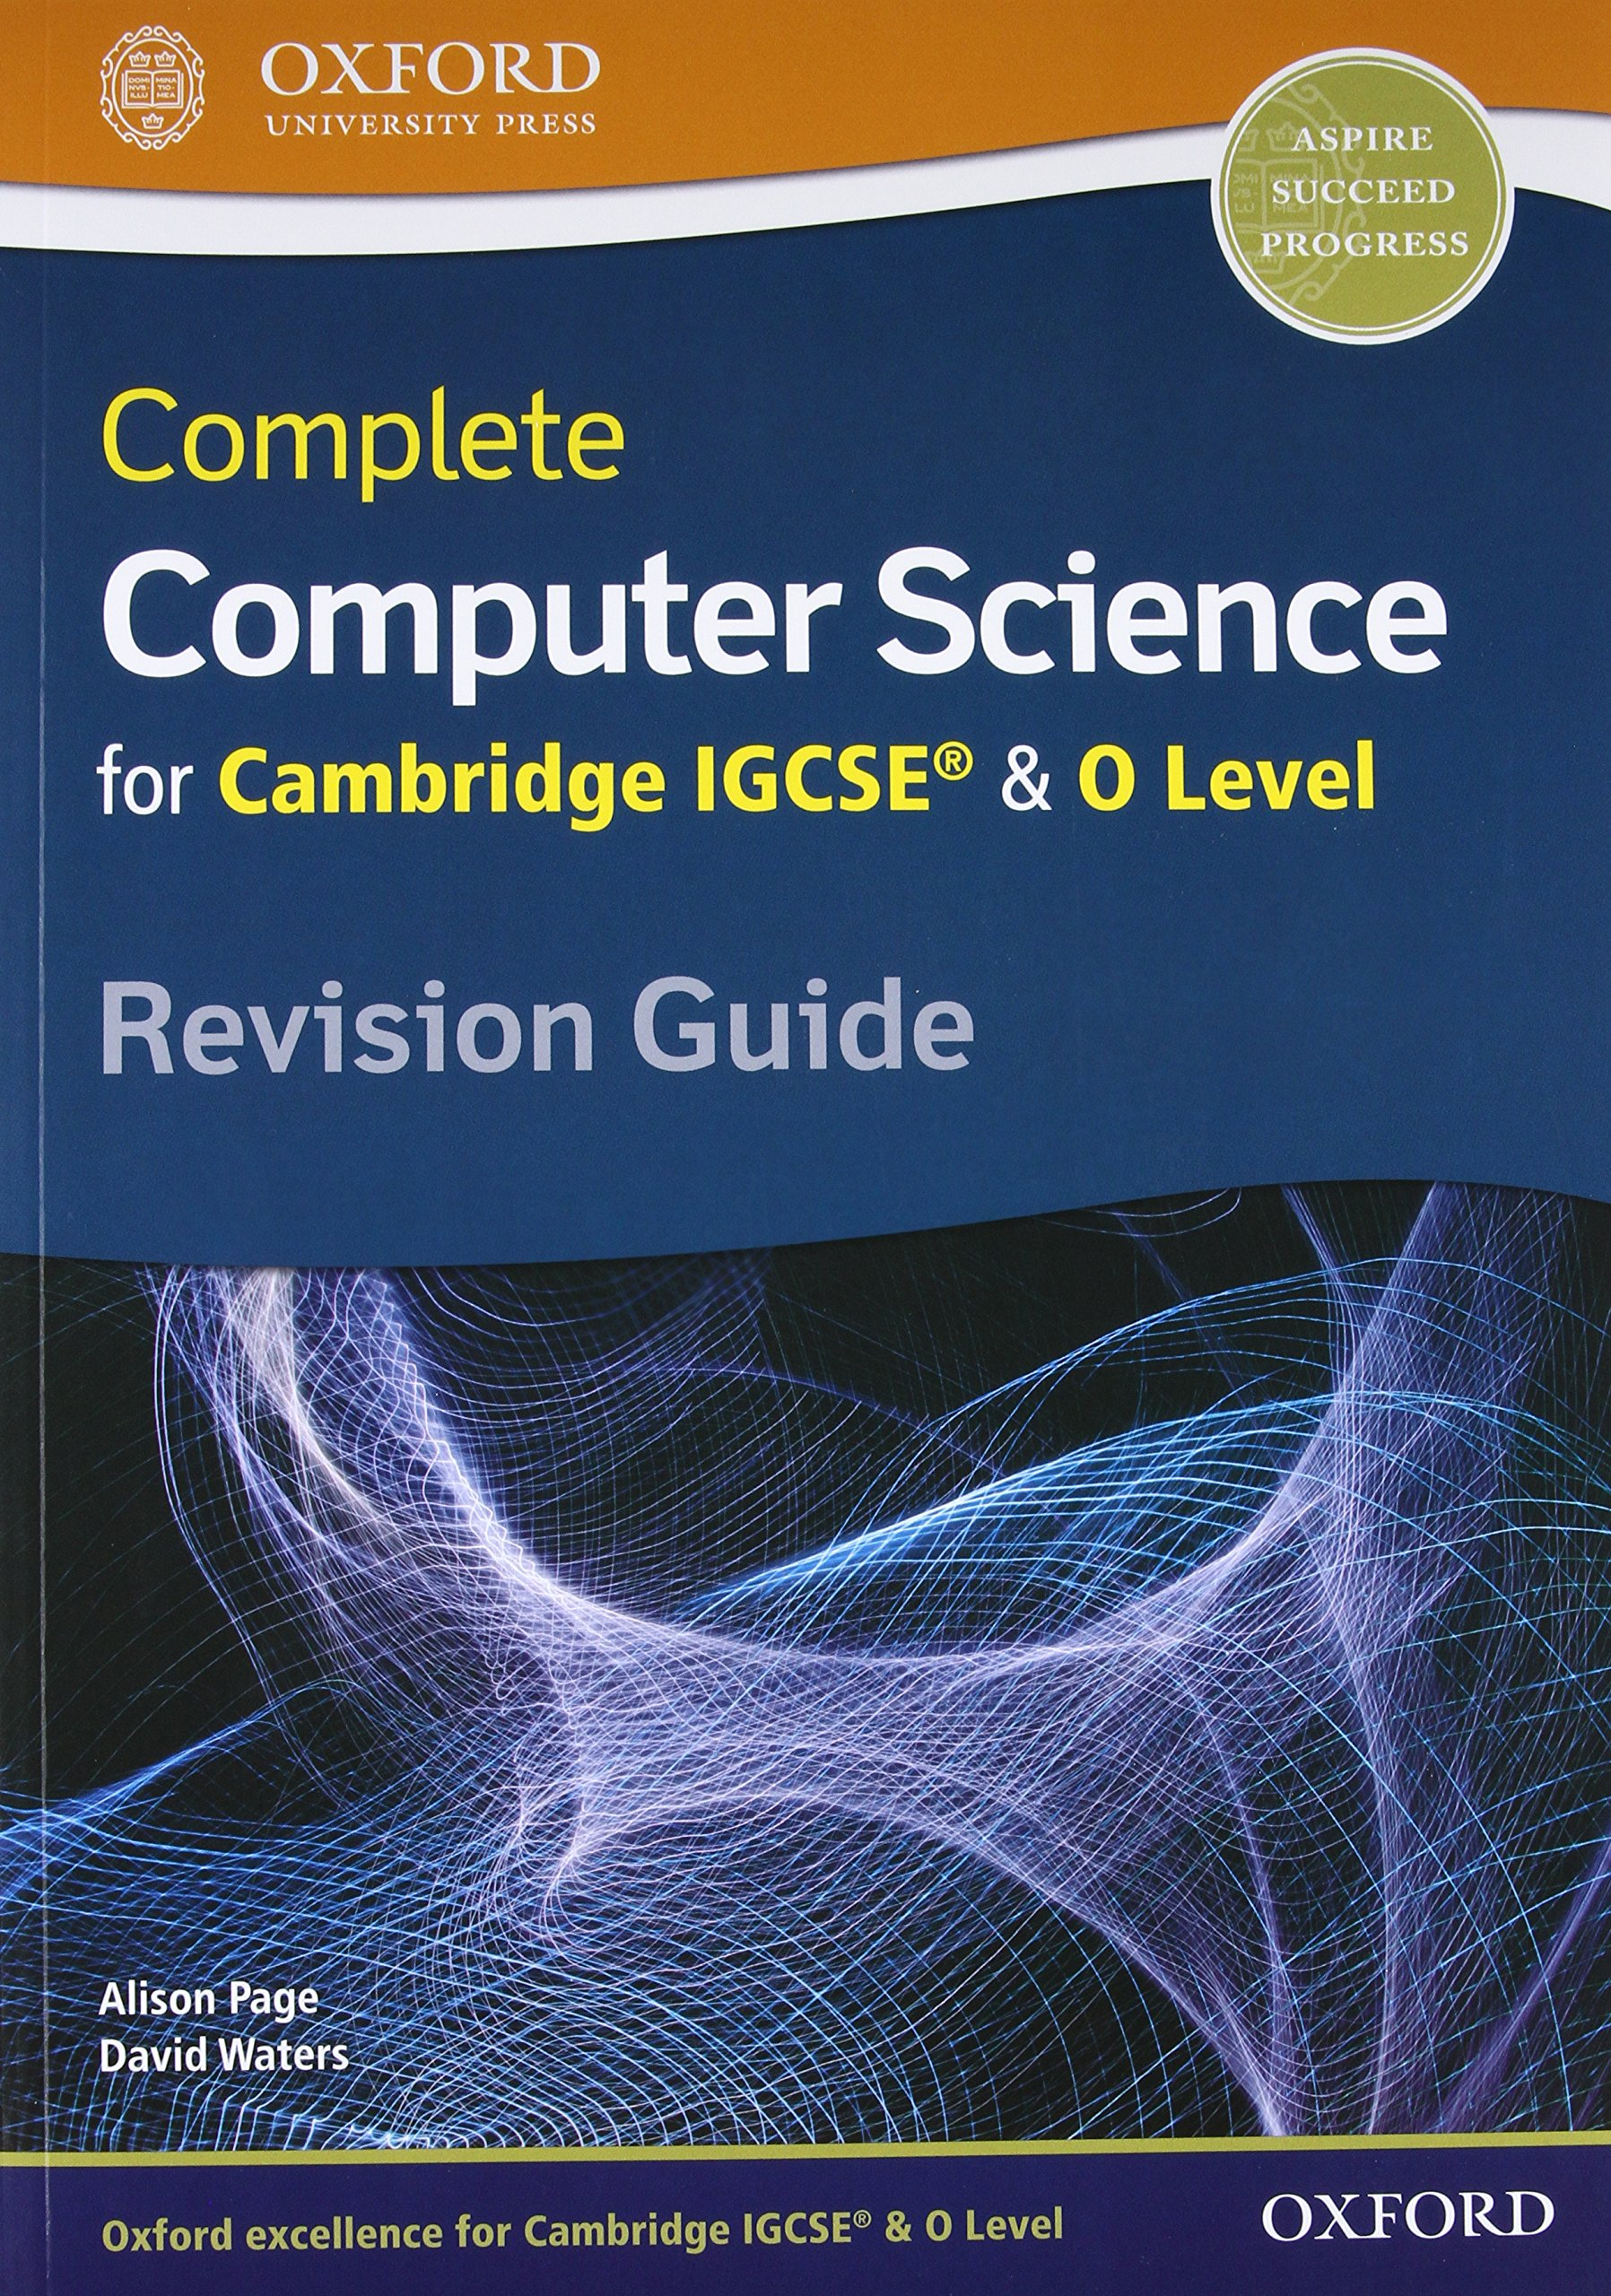 Complete Computer Science for Cambridge IGCSE® & O Level Revision Guide:  Amazon.co.uk: Alison Page, David Waters: 9780198367253: Books